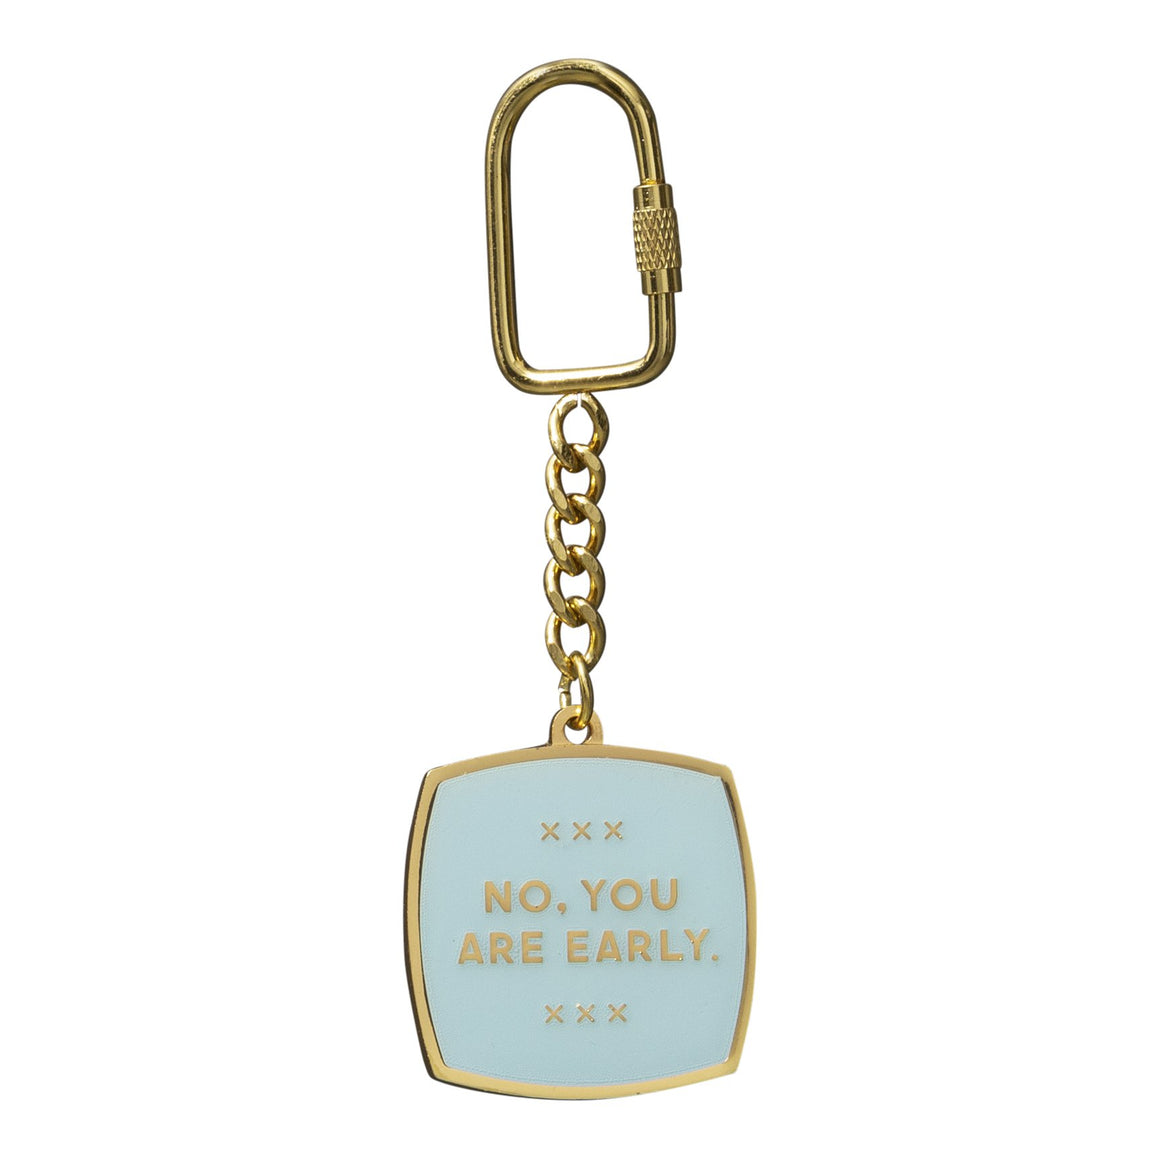 No, You Are Early Key Chain